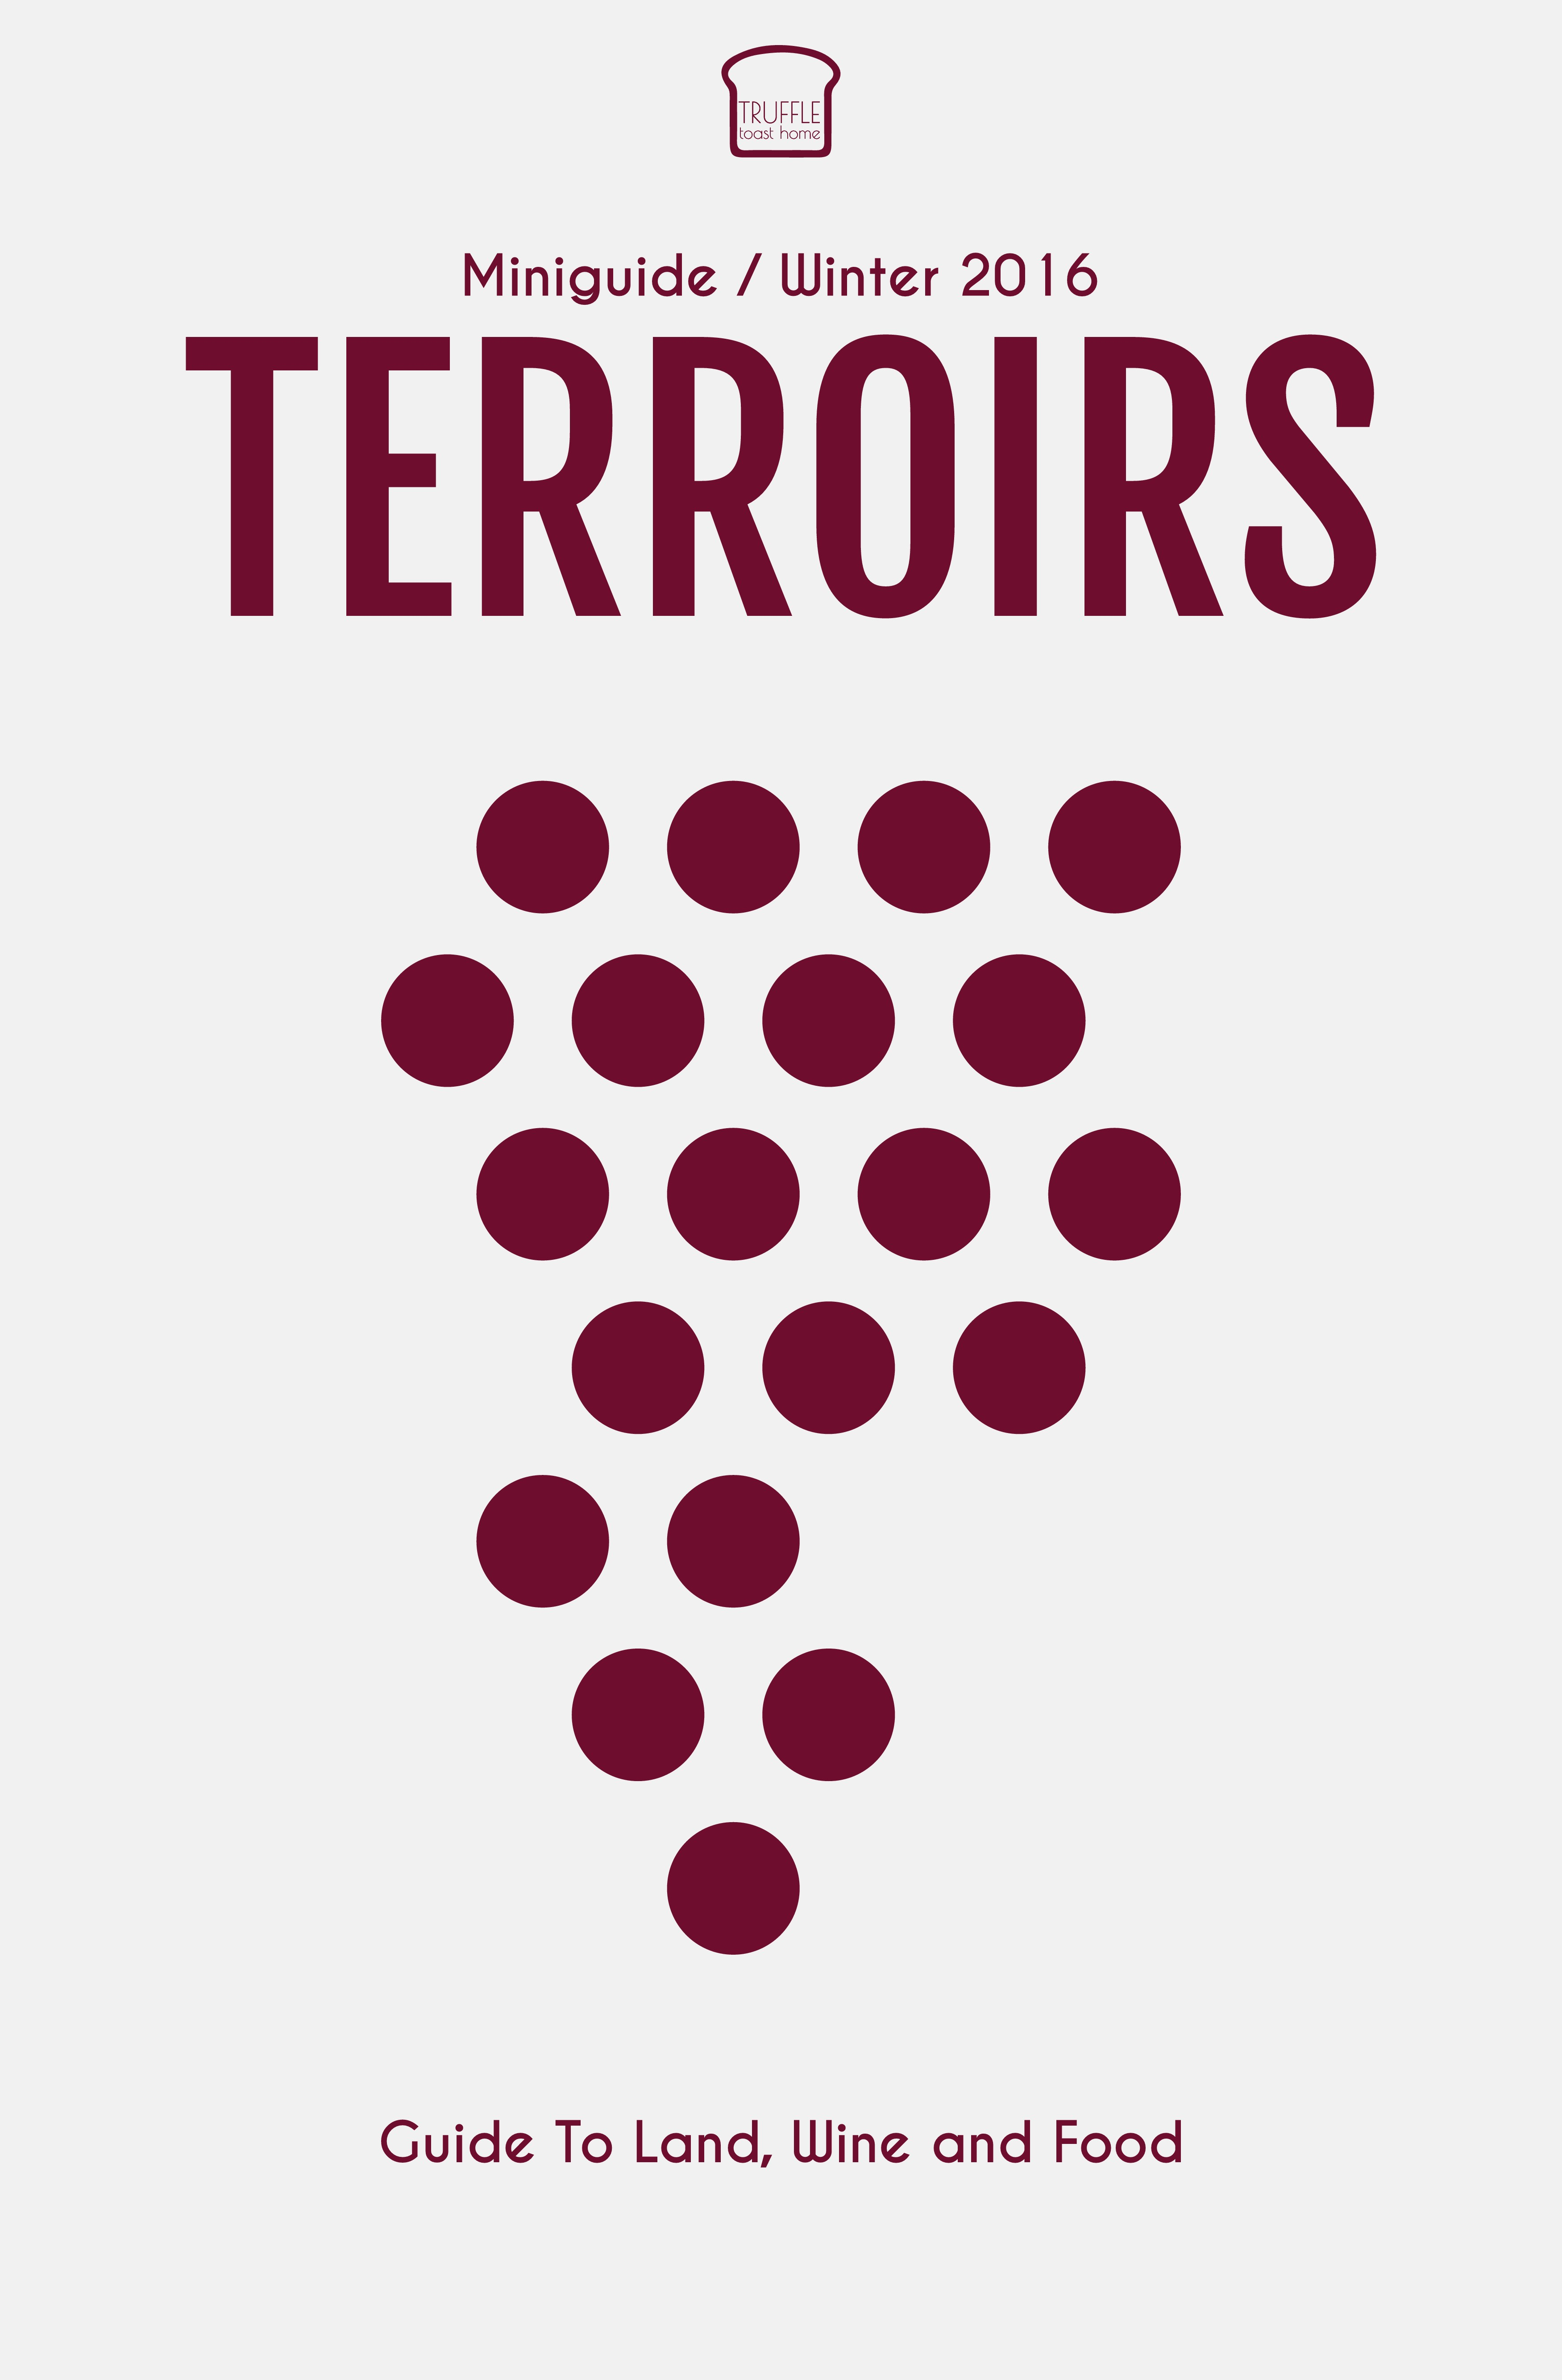 Modern eBook Cover for Wine and Food Website